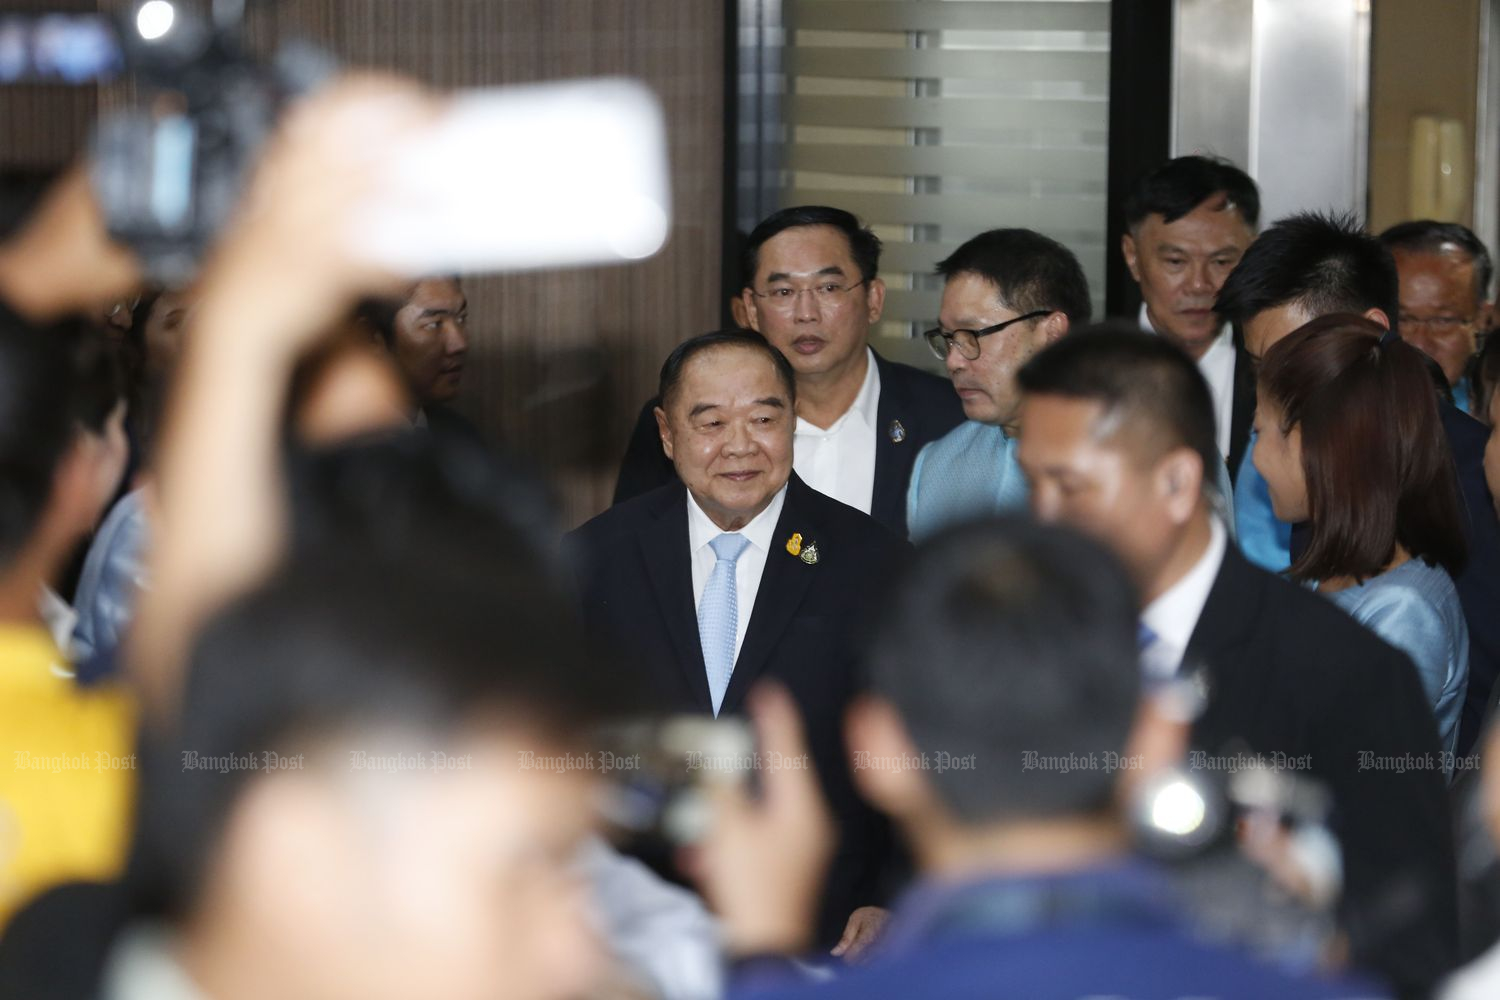 Gen Prawit Wongsuwon enters the Palang Pracharath Party's headquarters in Bangkok amid warm greetings by MPs and members on Tuesday. (Photo by Pornprom Sattrabhaya)